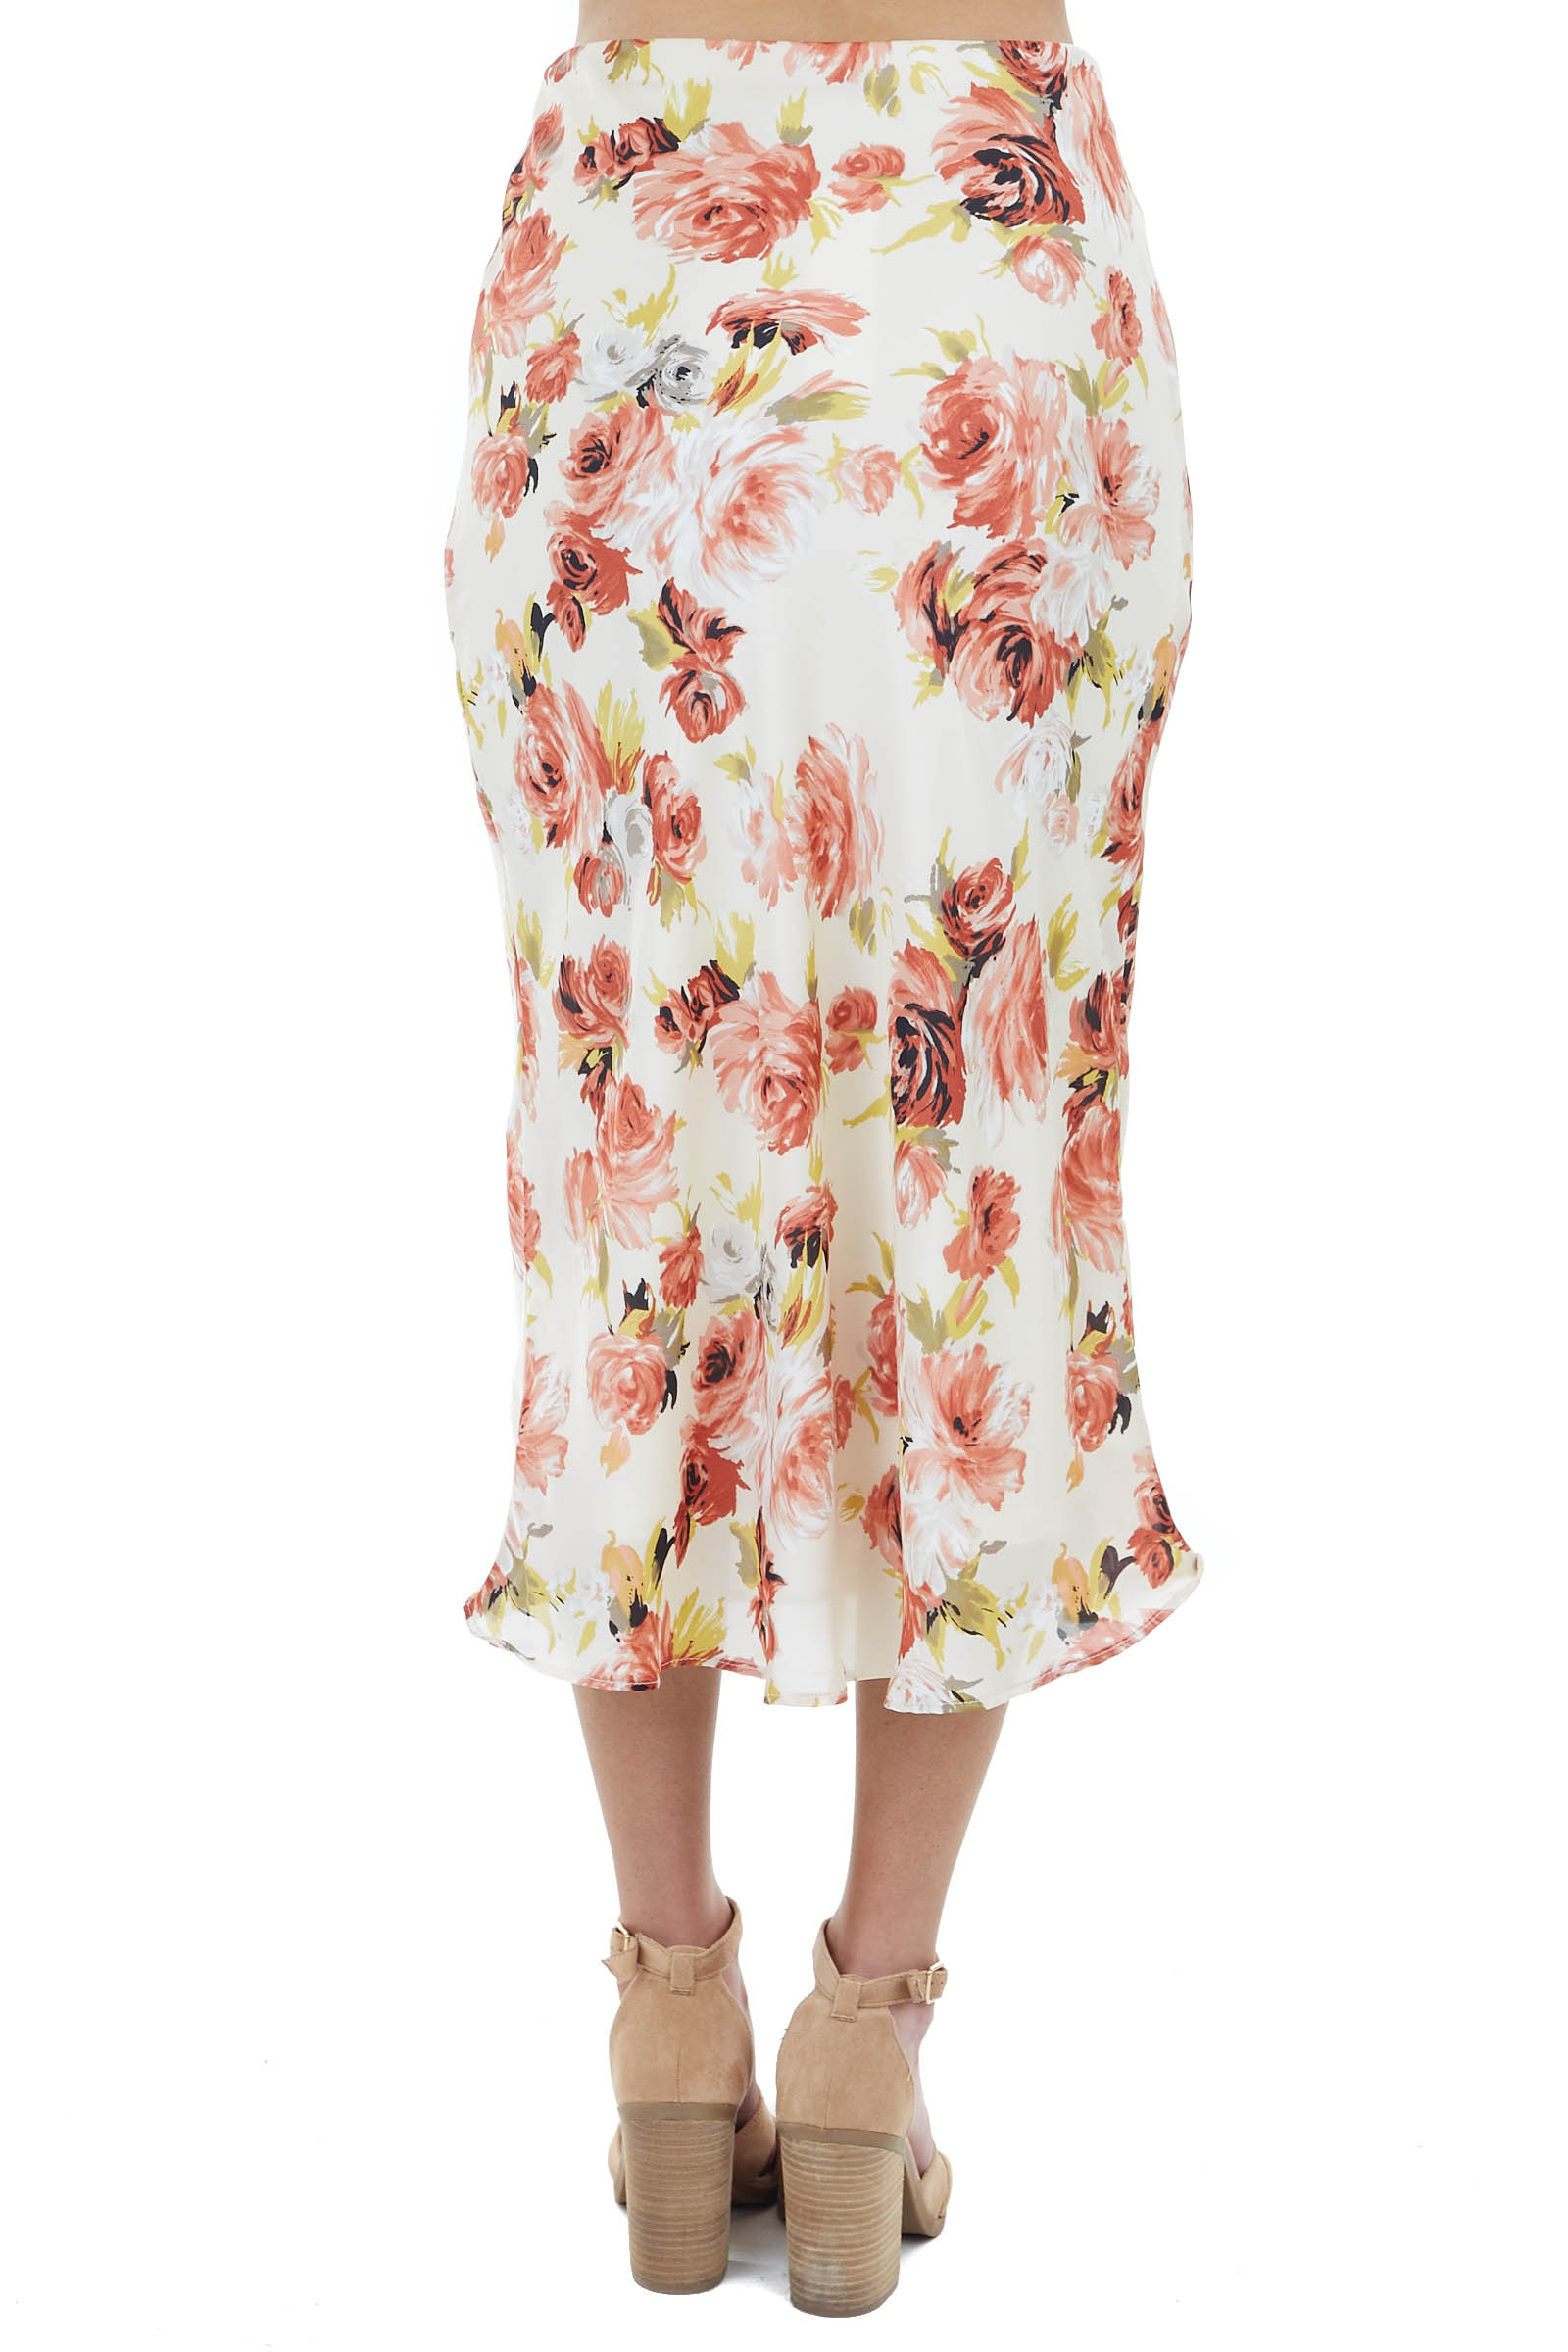 Champagne Floral Print Midi Skirt with Elastic Waistband